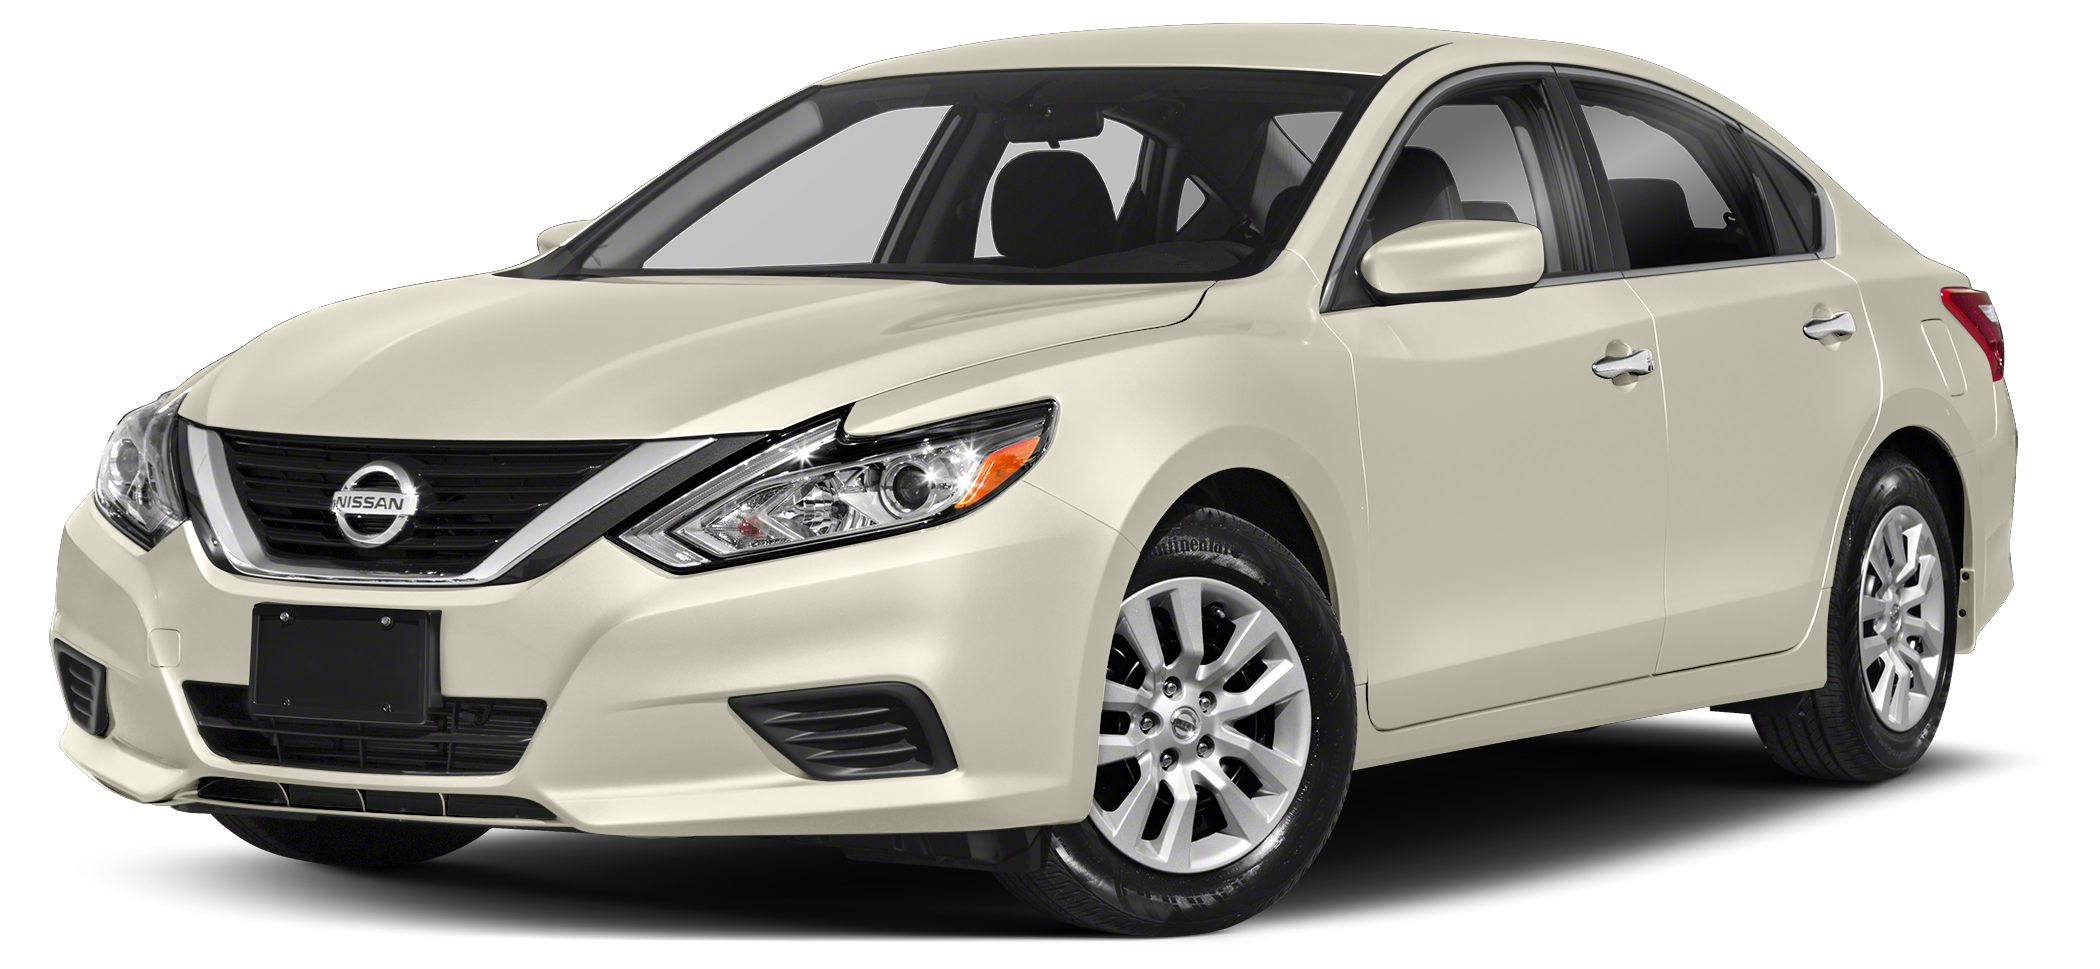 2018 Nissan Altima 25 SR The premium exterior design of the 2018 Nissan Altima from the powerful